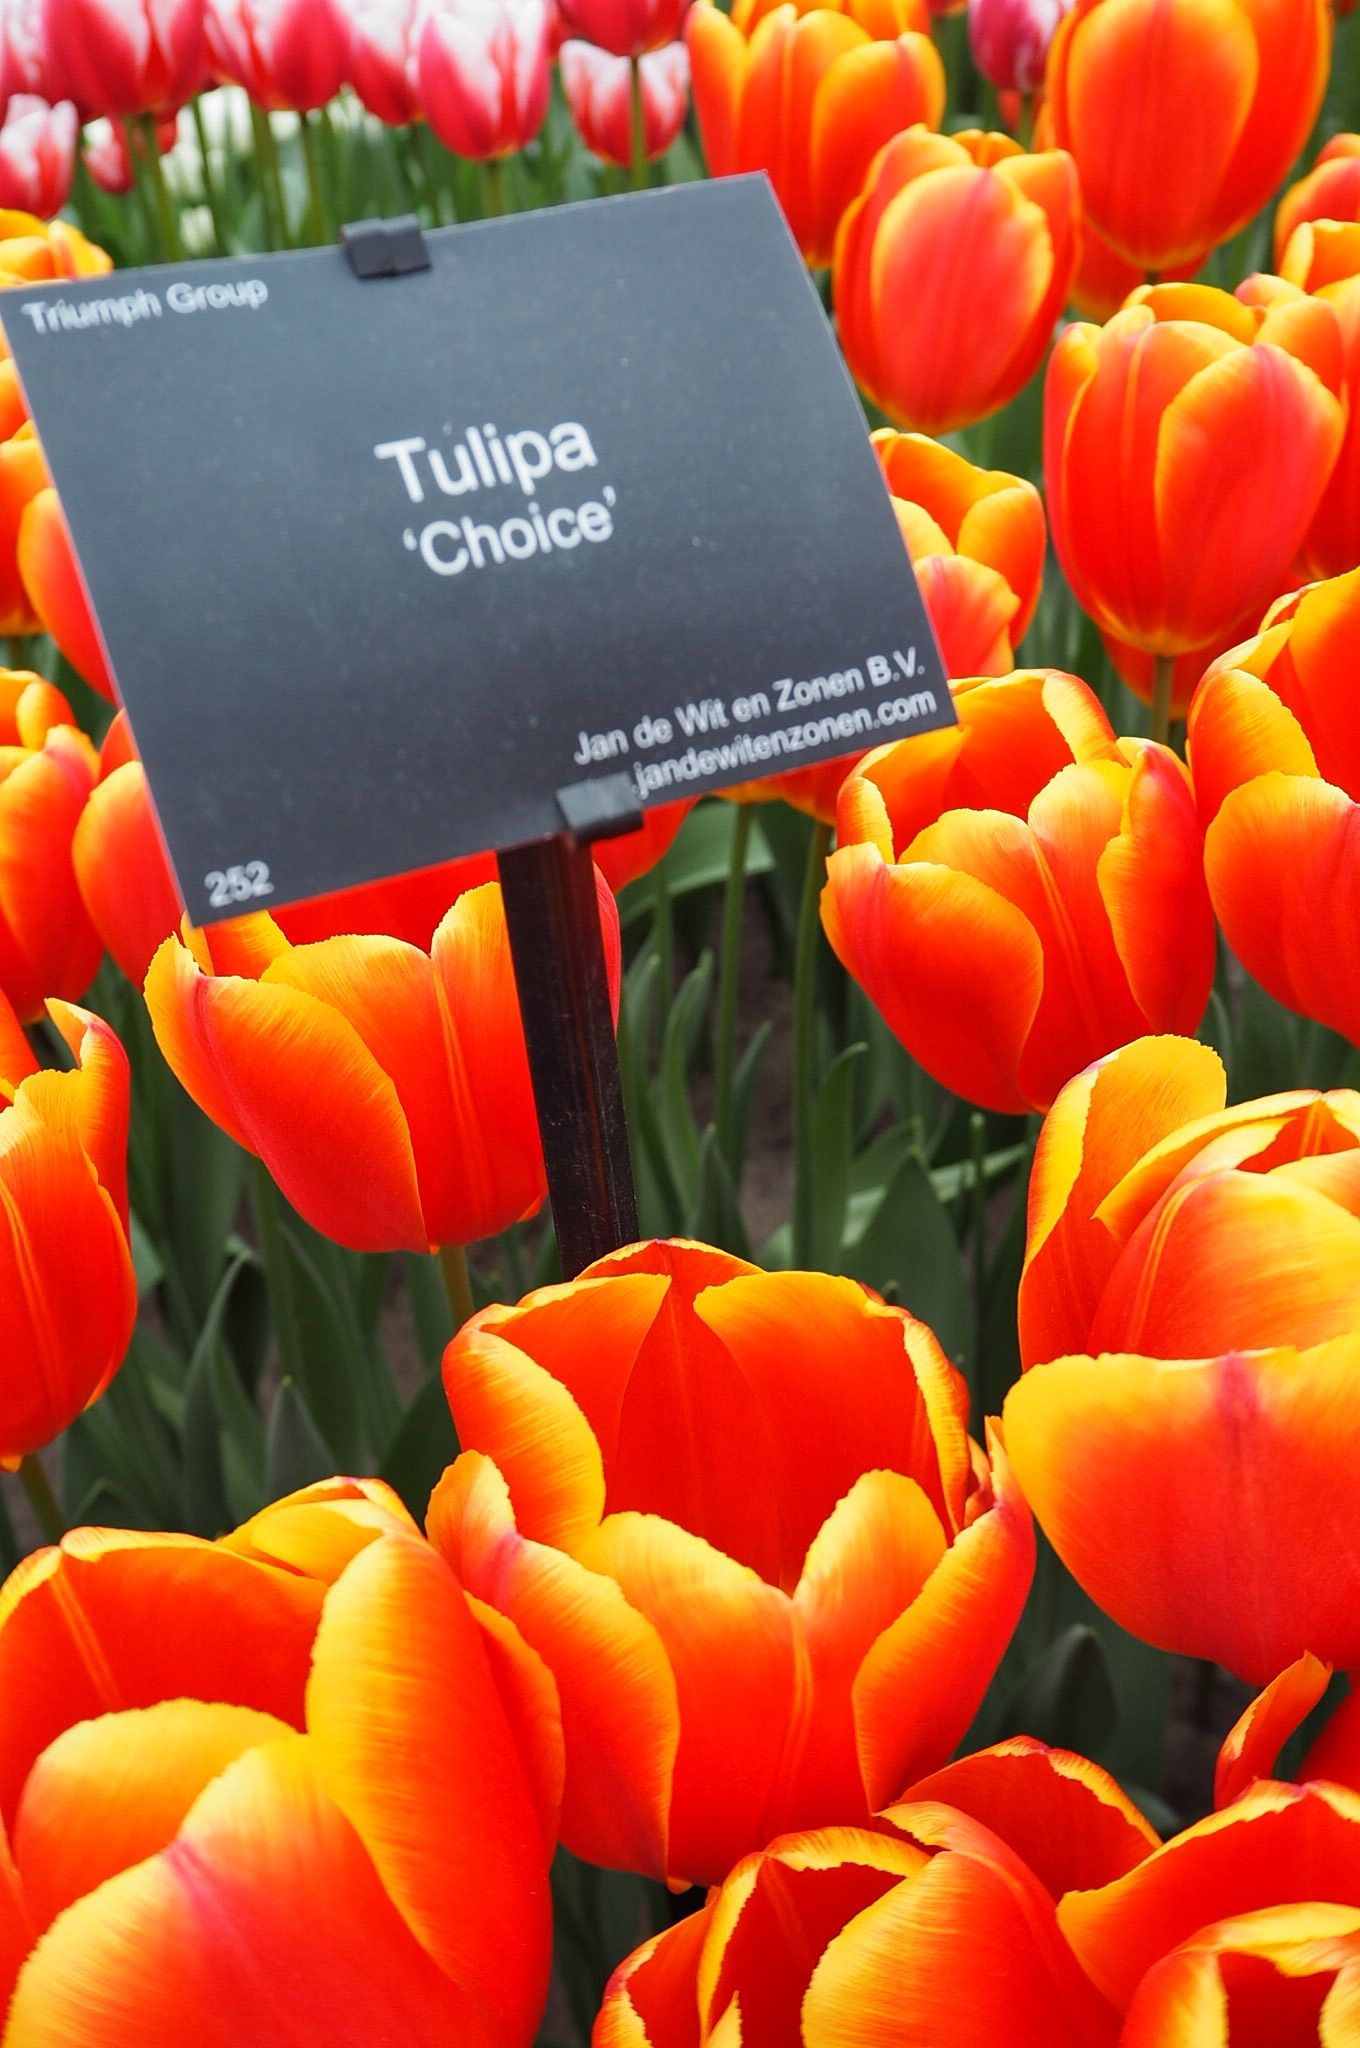 My favourite Tulipa Choice